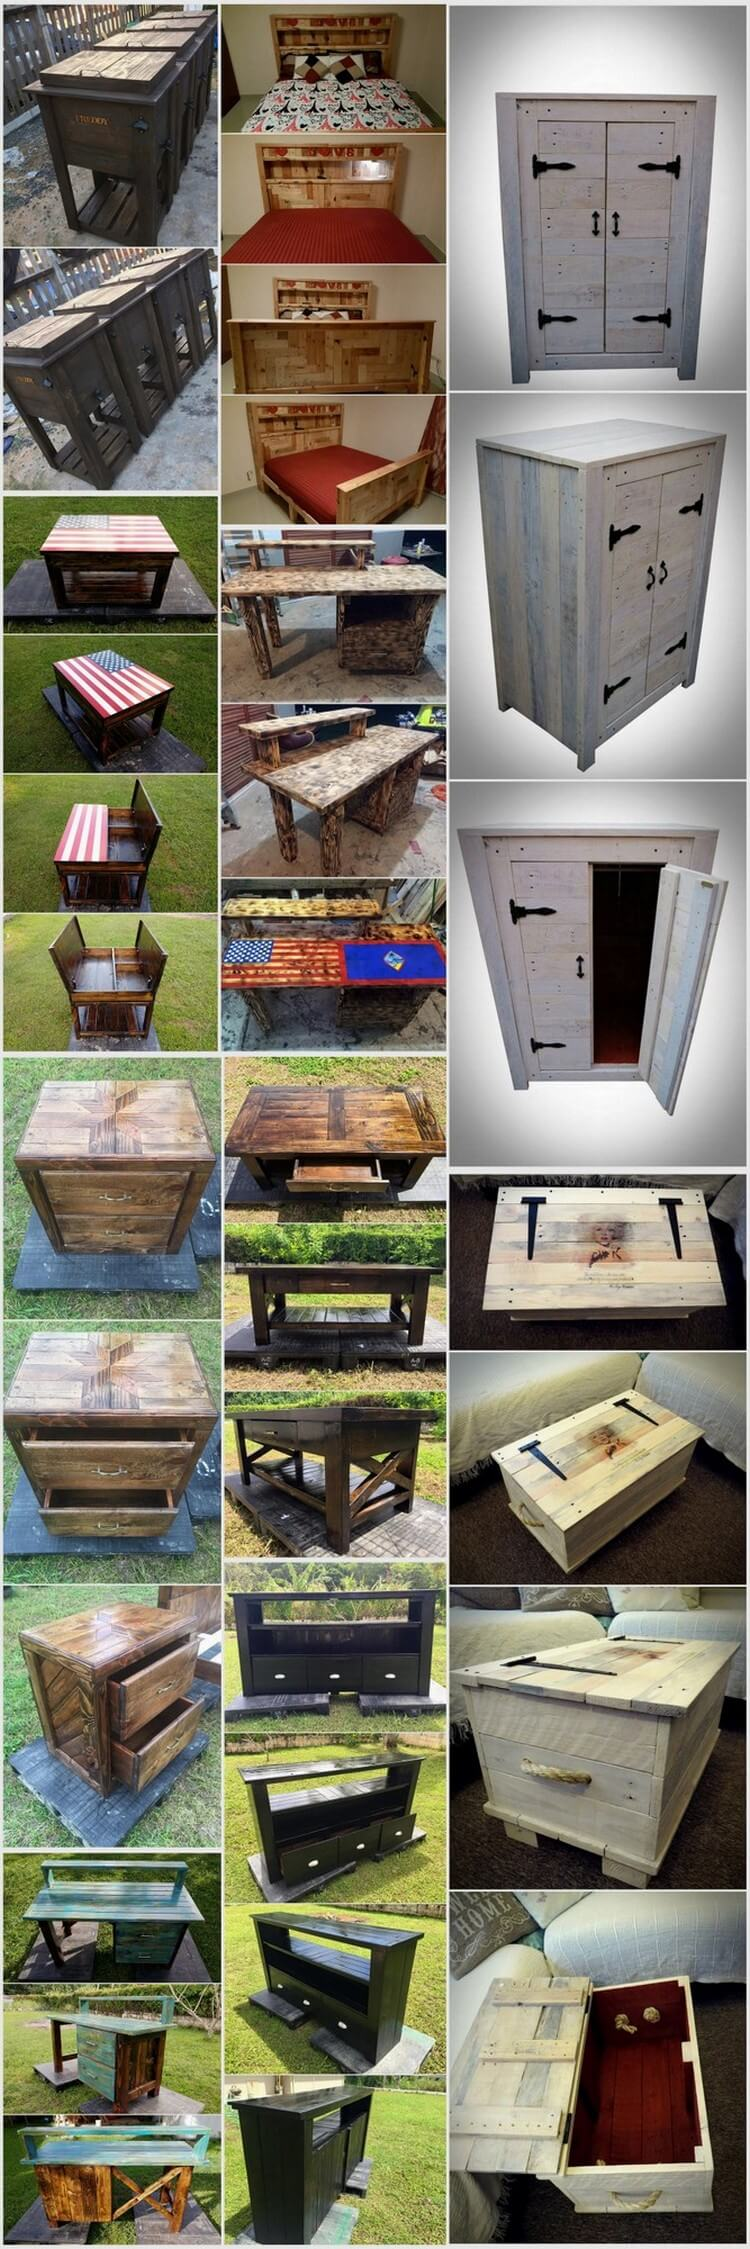 Creative Ways to Give Wood Pallets Second Life